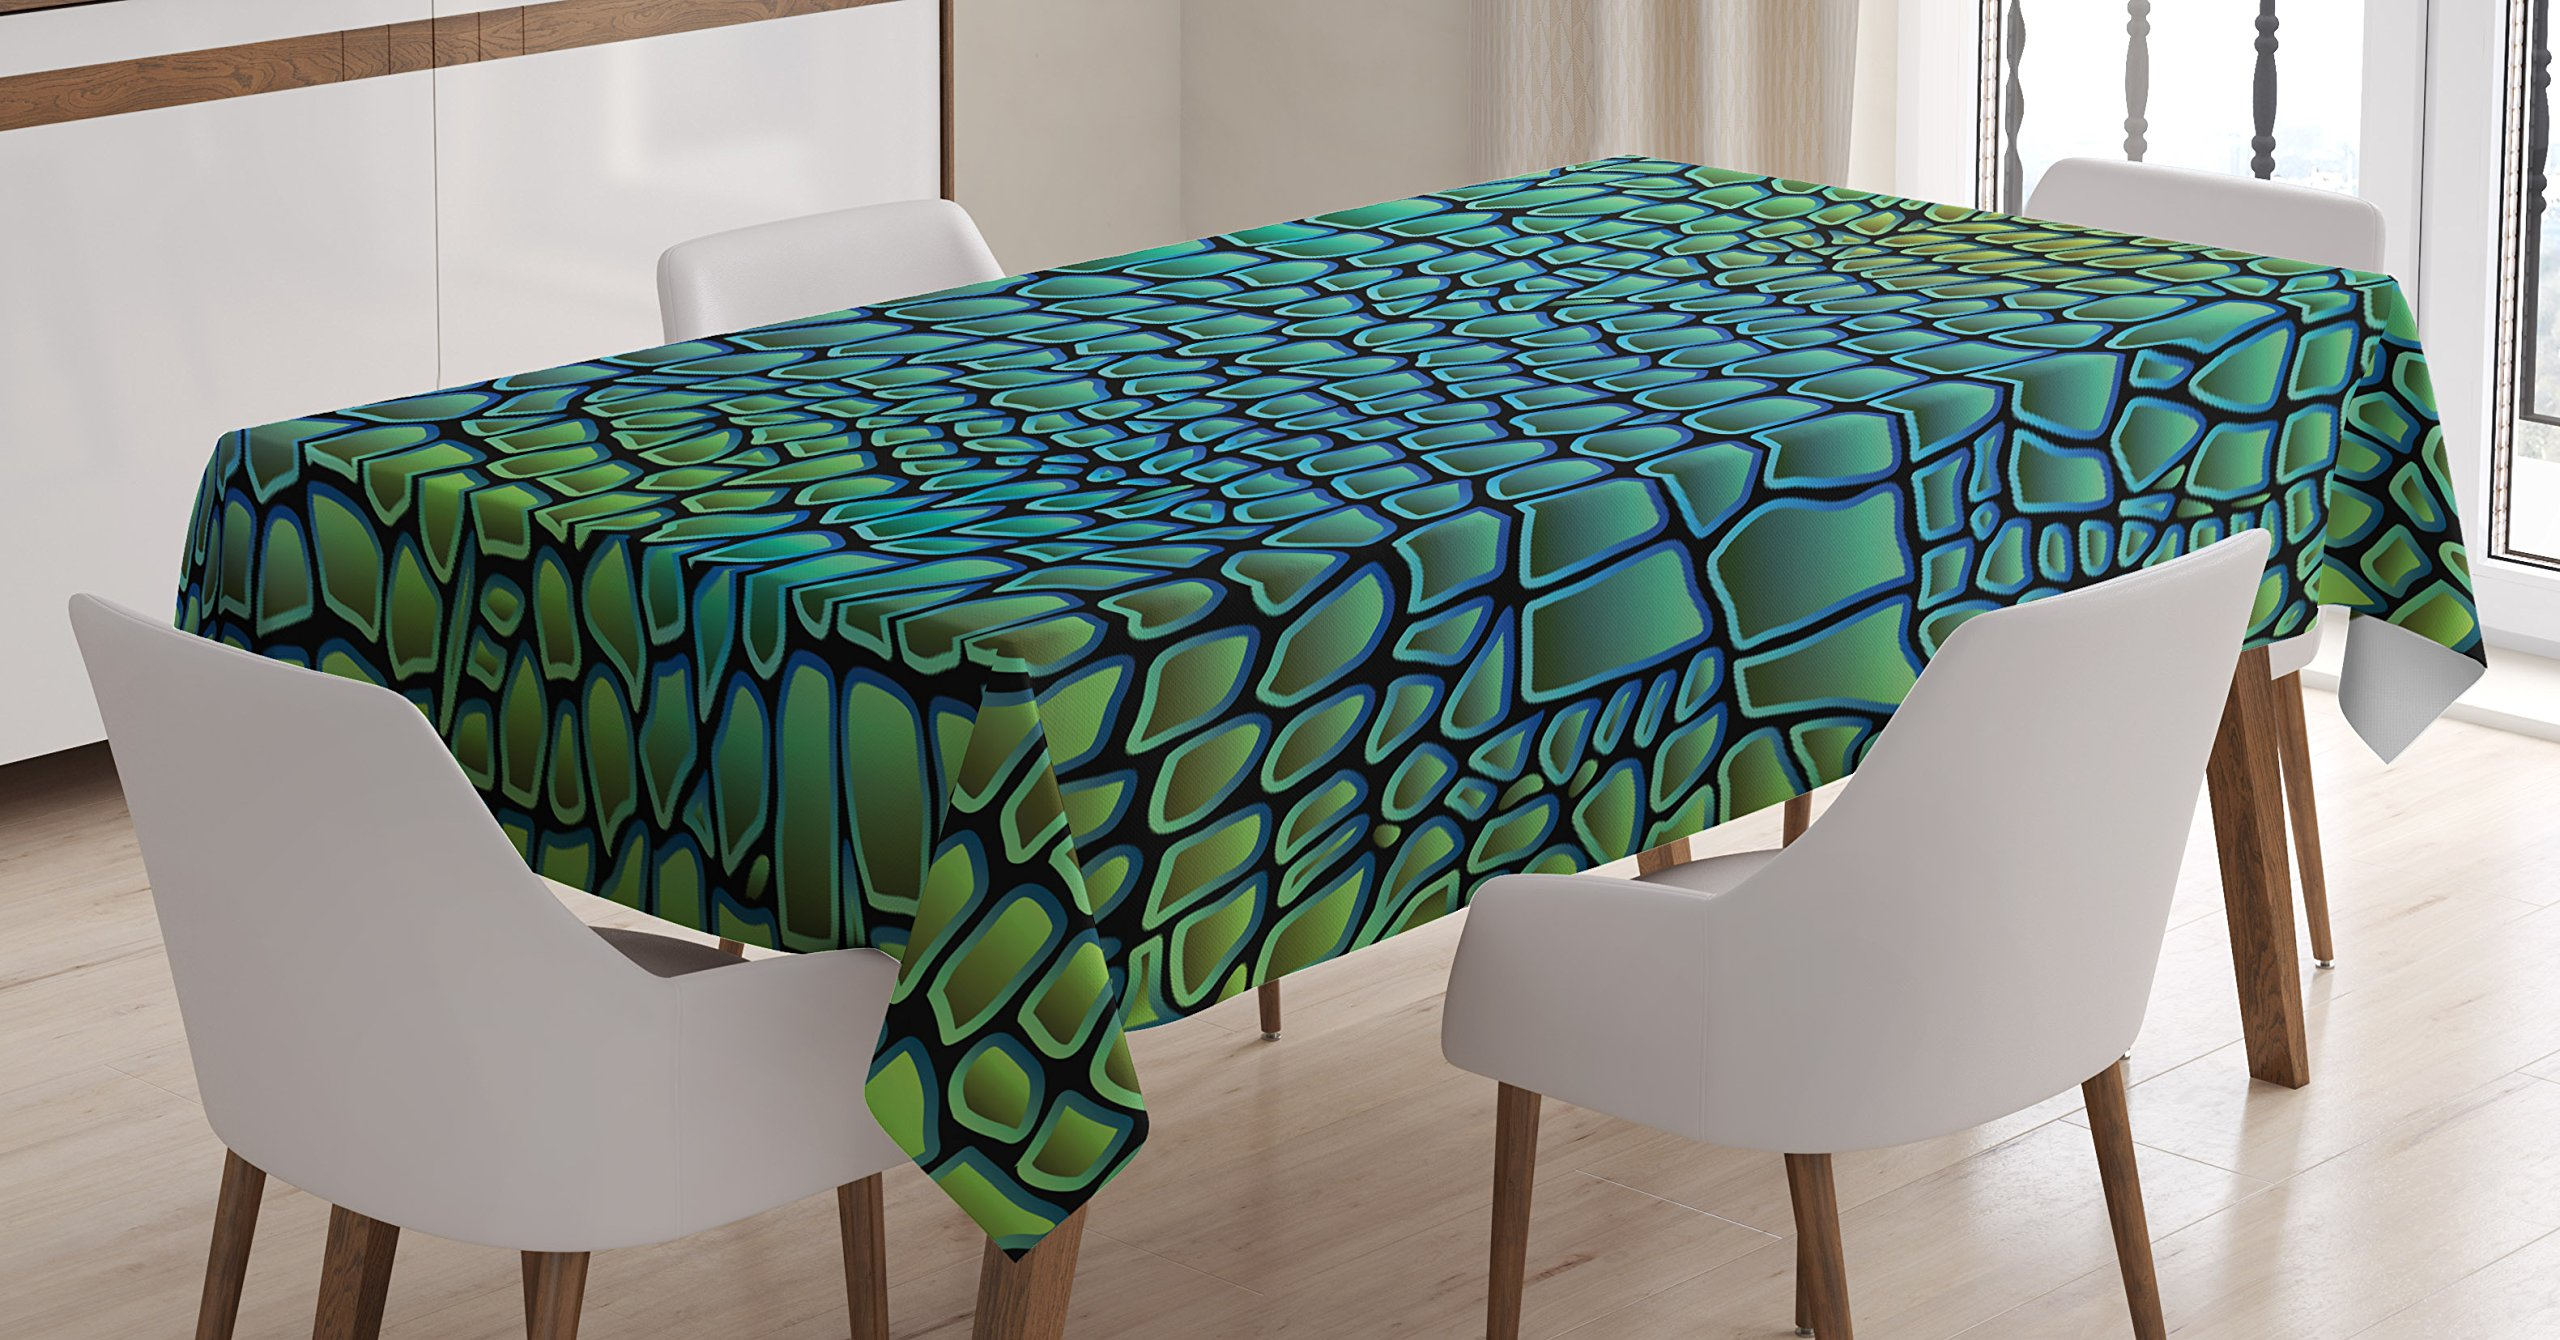 Ambesonne Abstract Tablecloth, Alligator Skin African Animal Crocodile Reptile Safari Wildlife Vibrant Artwork, Dining Room Kitchen Rectangular Table Cover, 52 W X 70 L inches, Green Blue